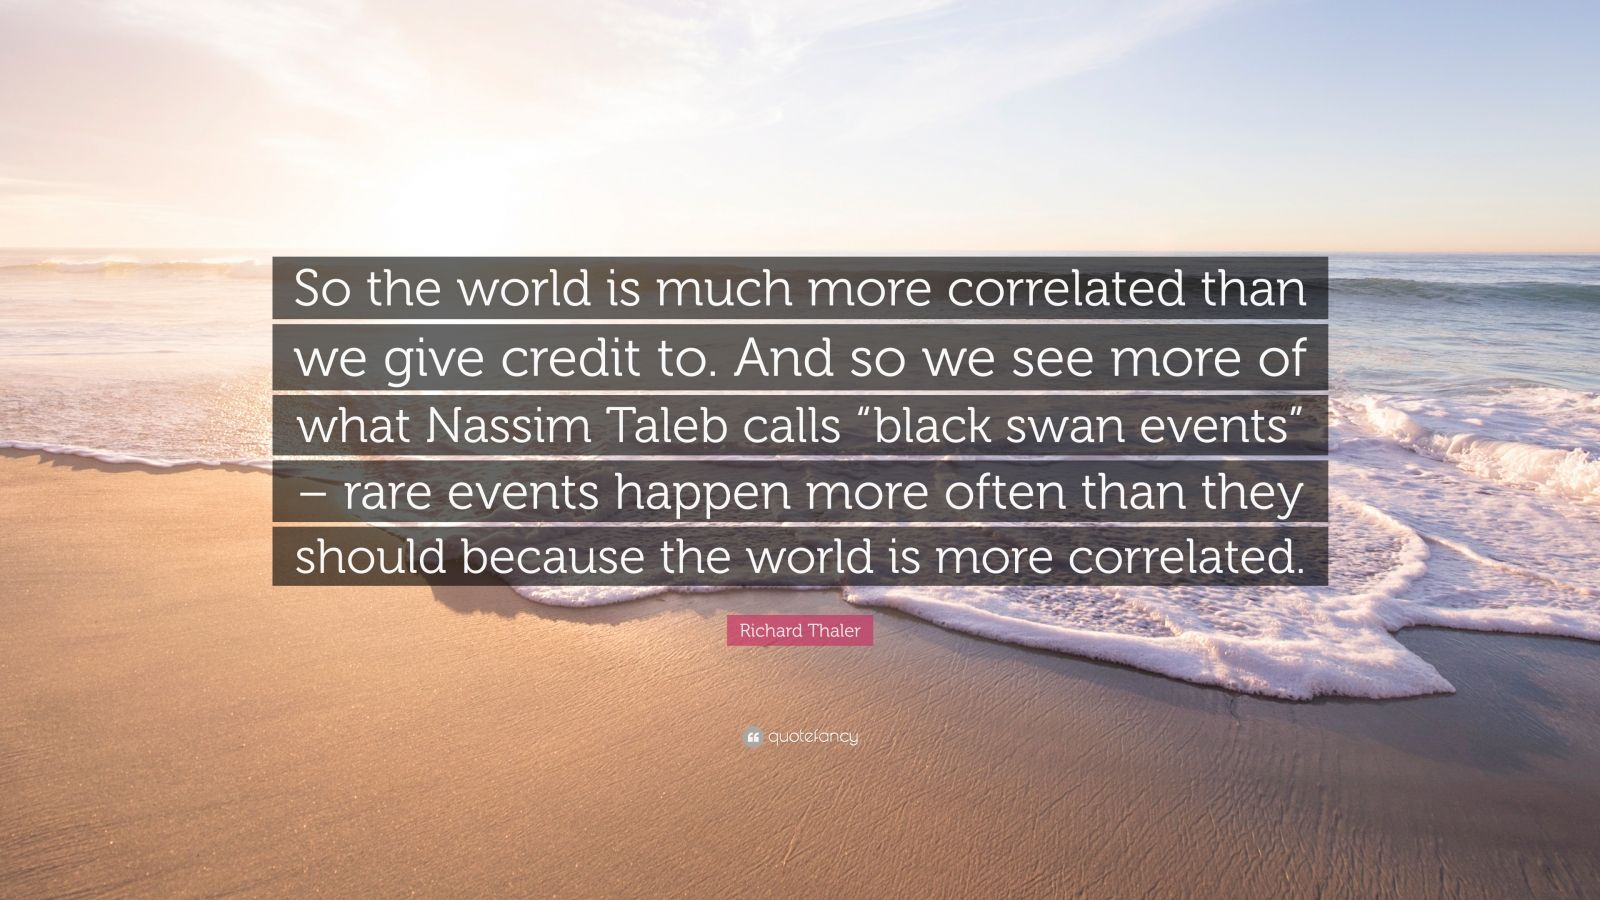 """Richard Thaler Quote: """"So the world is much more correlated than we give credit to. And so we see more of what Nassim Taleb calls """"black swan events"""" – rare events happen more often than they should because the world is more correlated."""""""